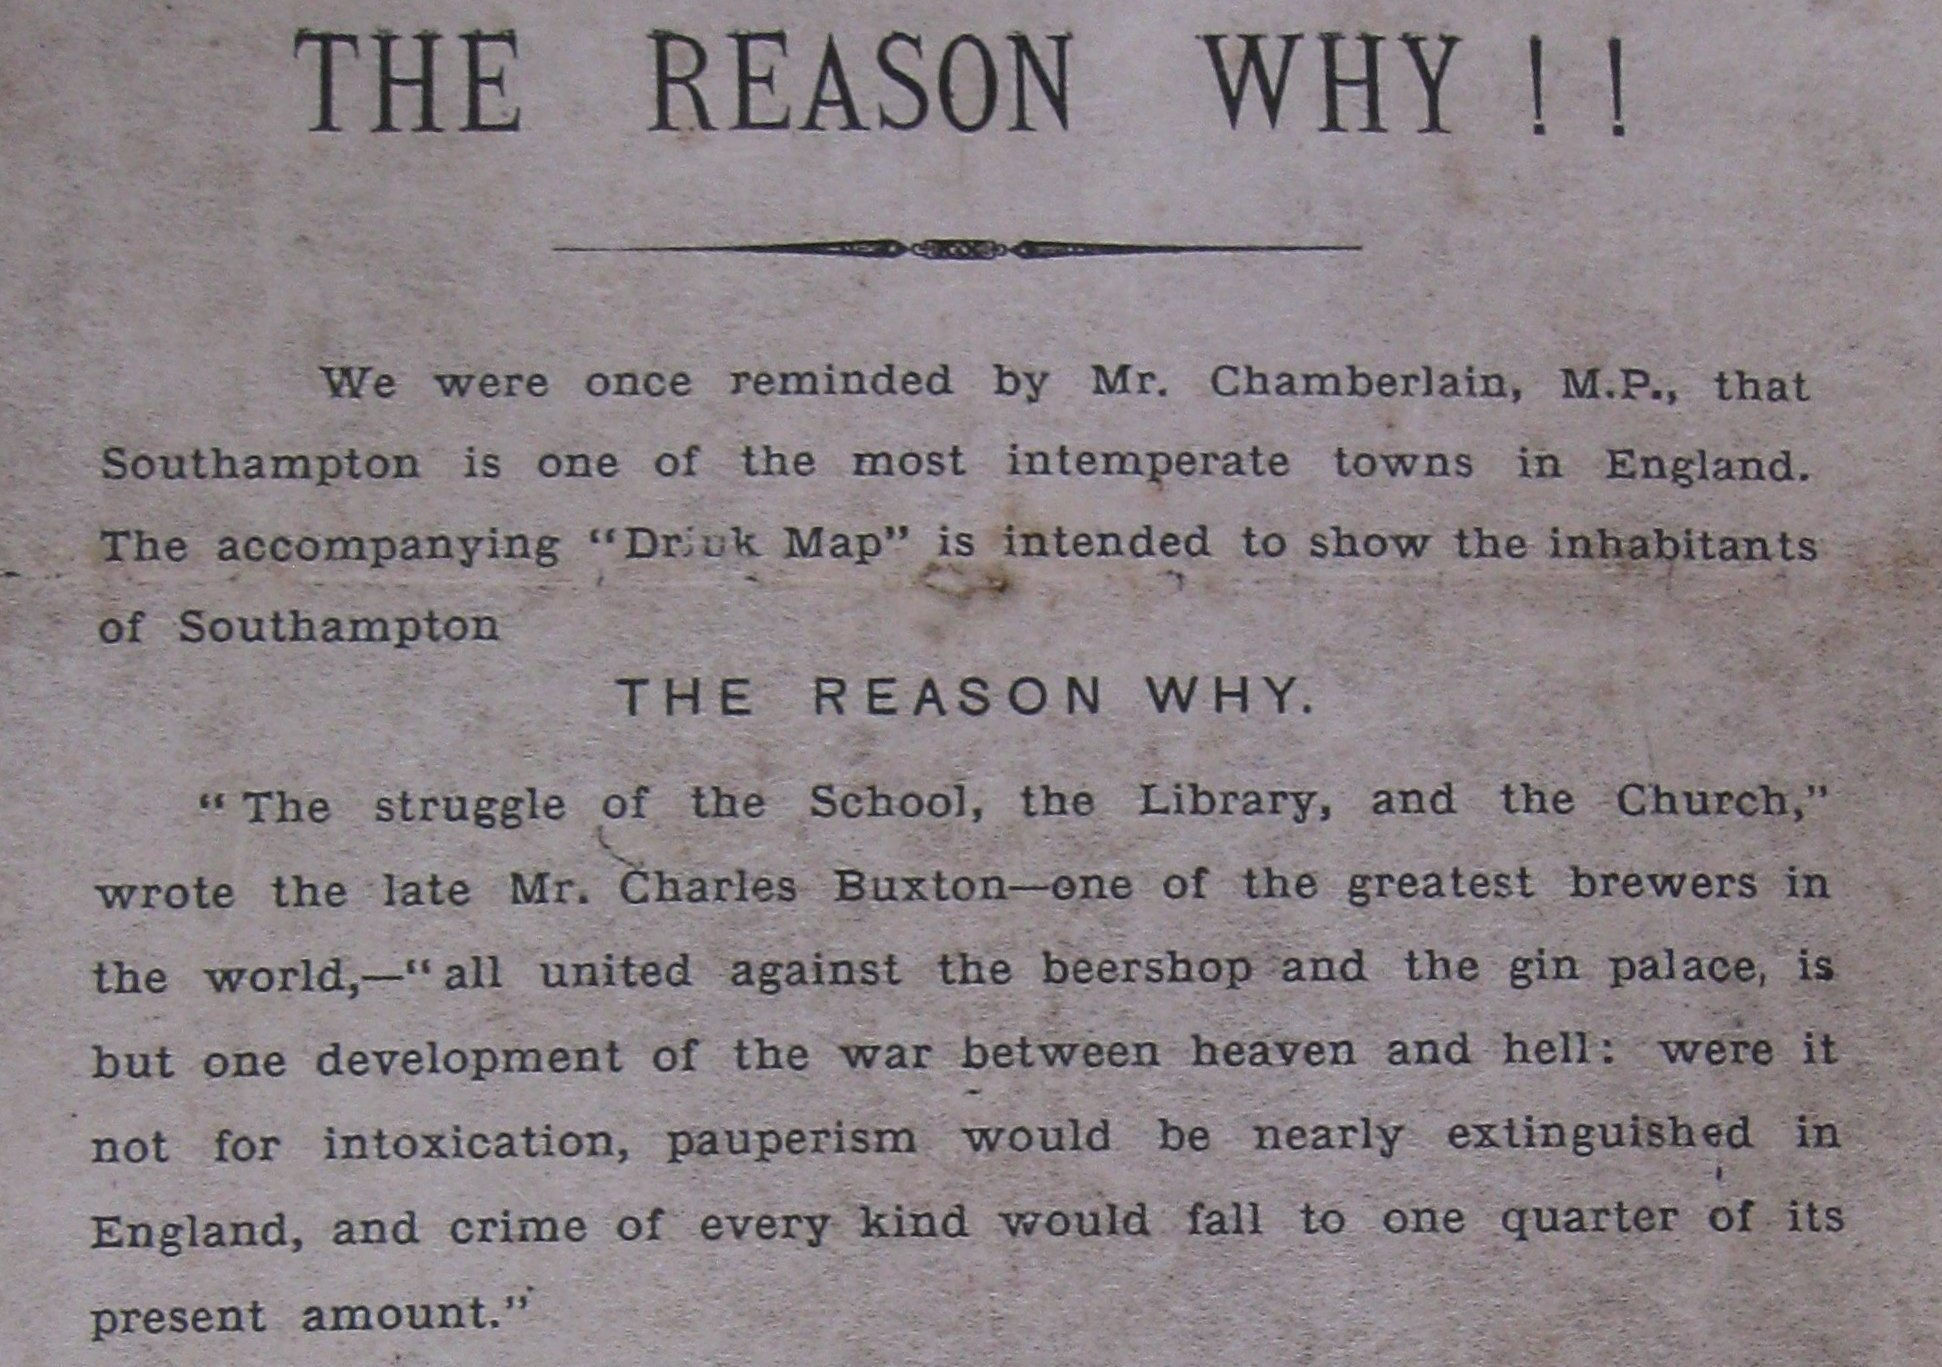 The Reason Why!! We were once reminded by Mr. Chamberlain, M.P., that Southampton is one of the most intemperate towns in England...